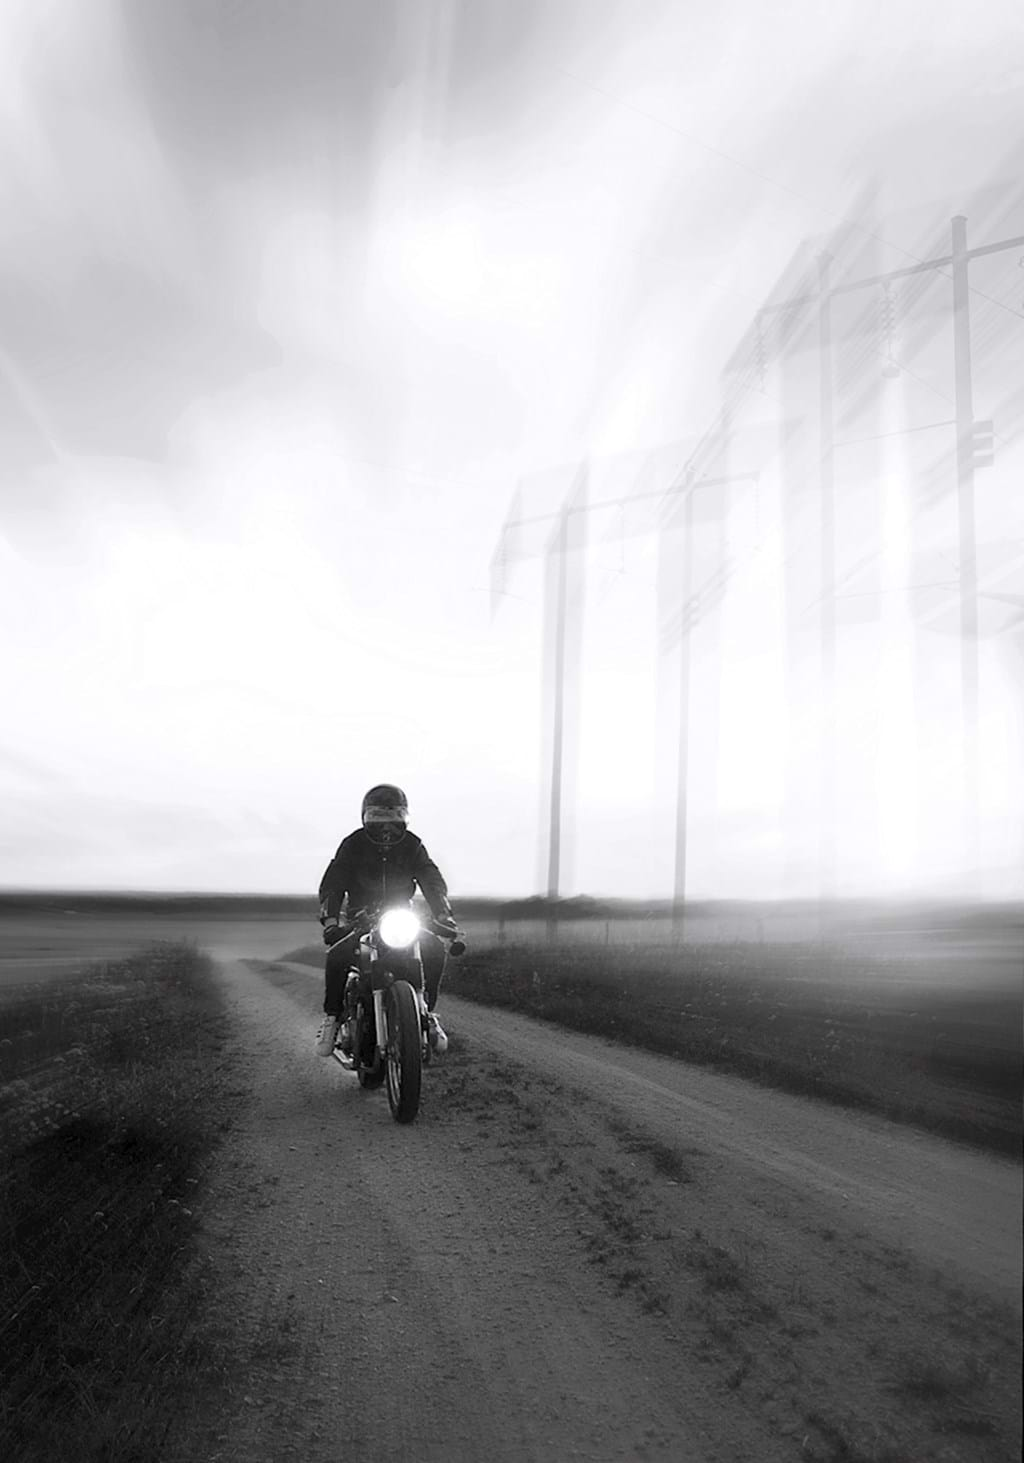 Poster: On the road - Artistic